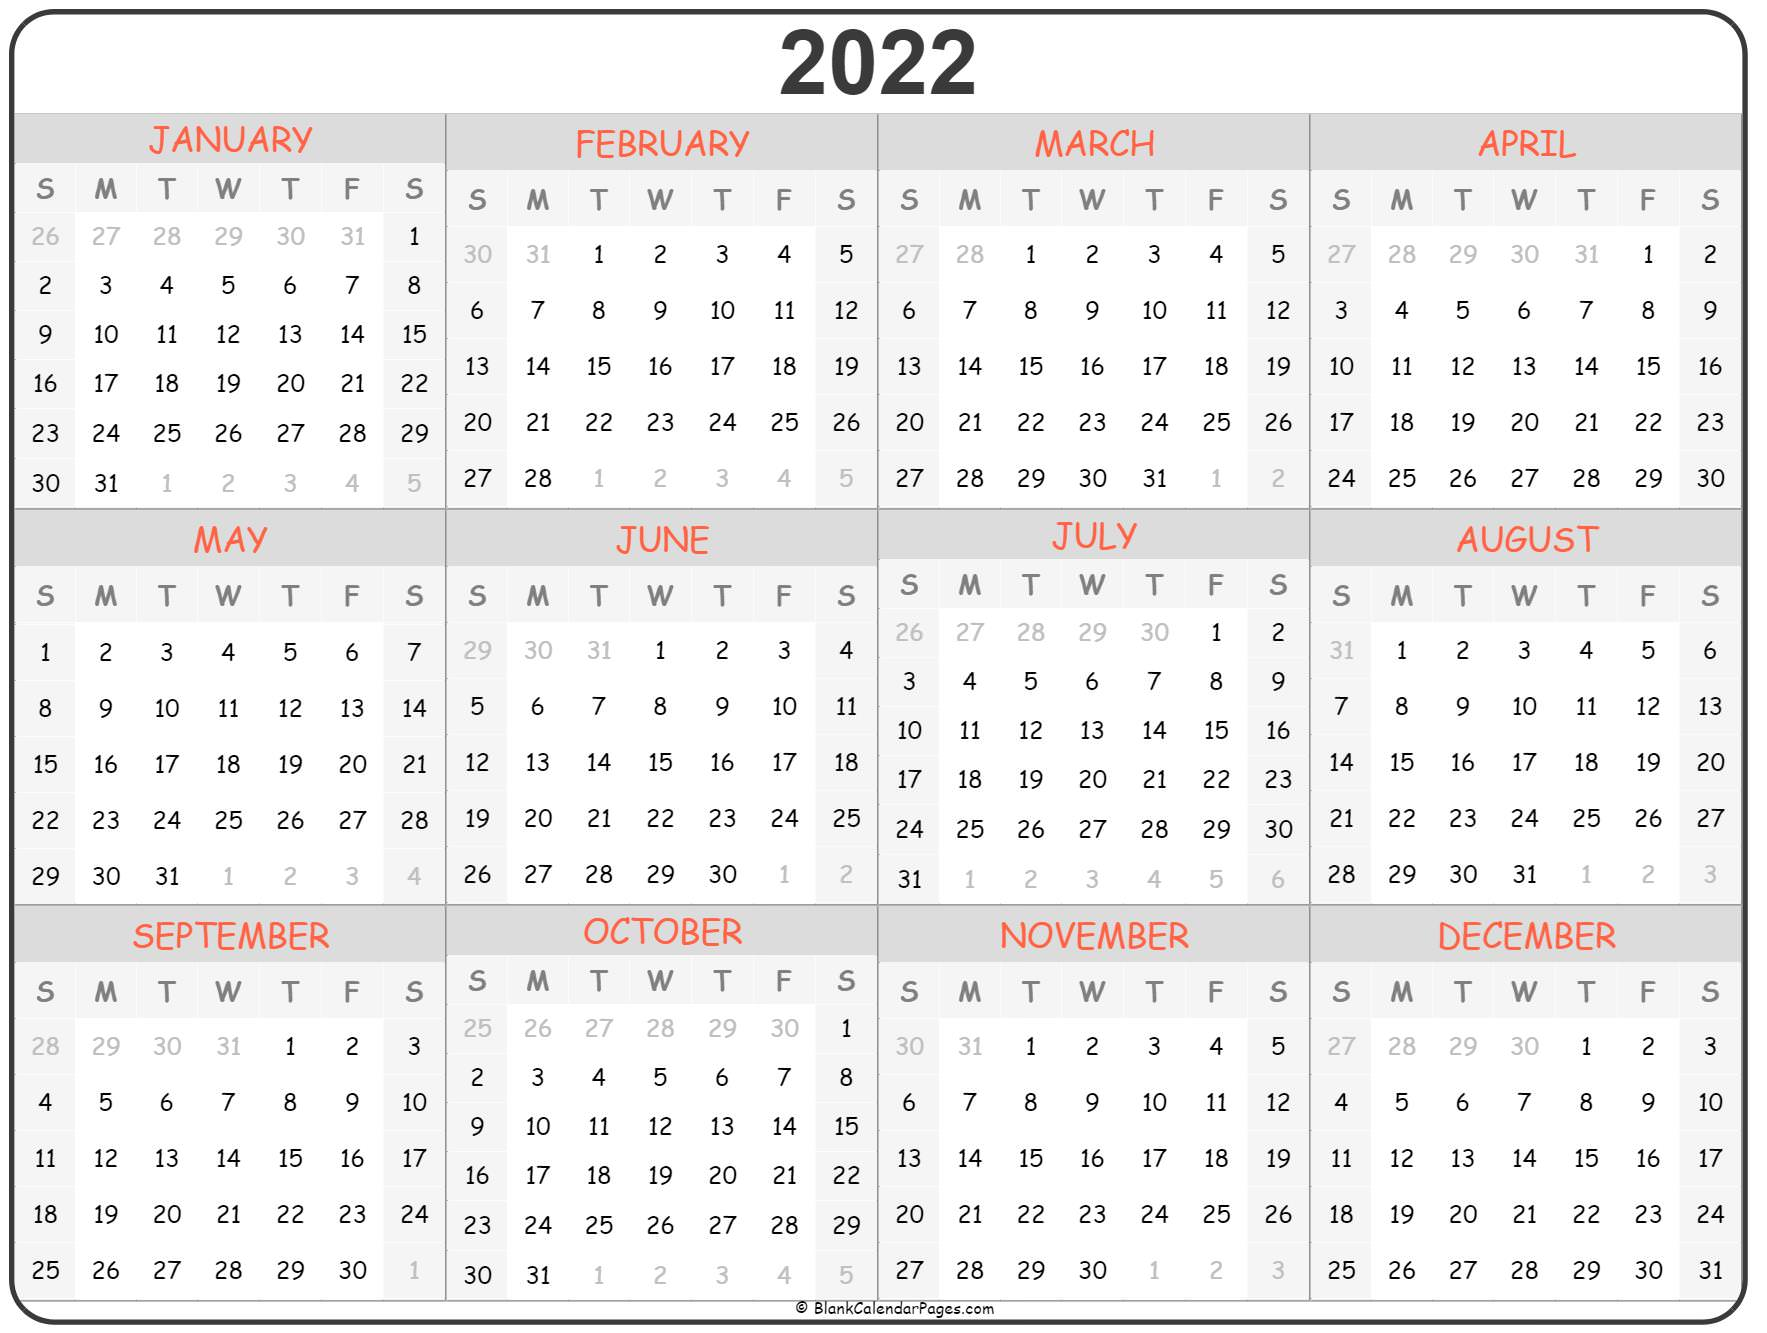 Download 2022 blank calendars designed to fit four months per page. 2022 year calendar | yearly printable